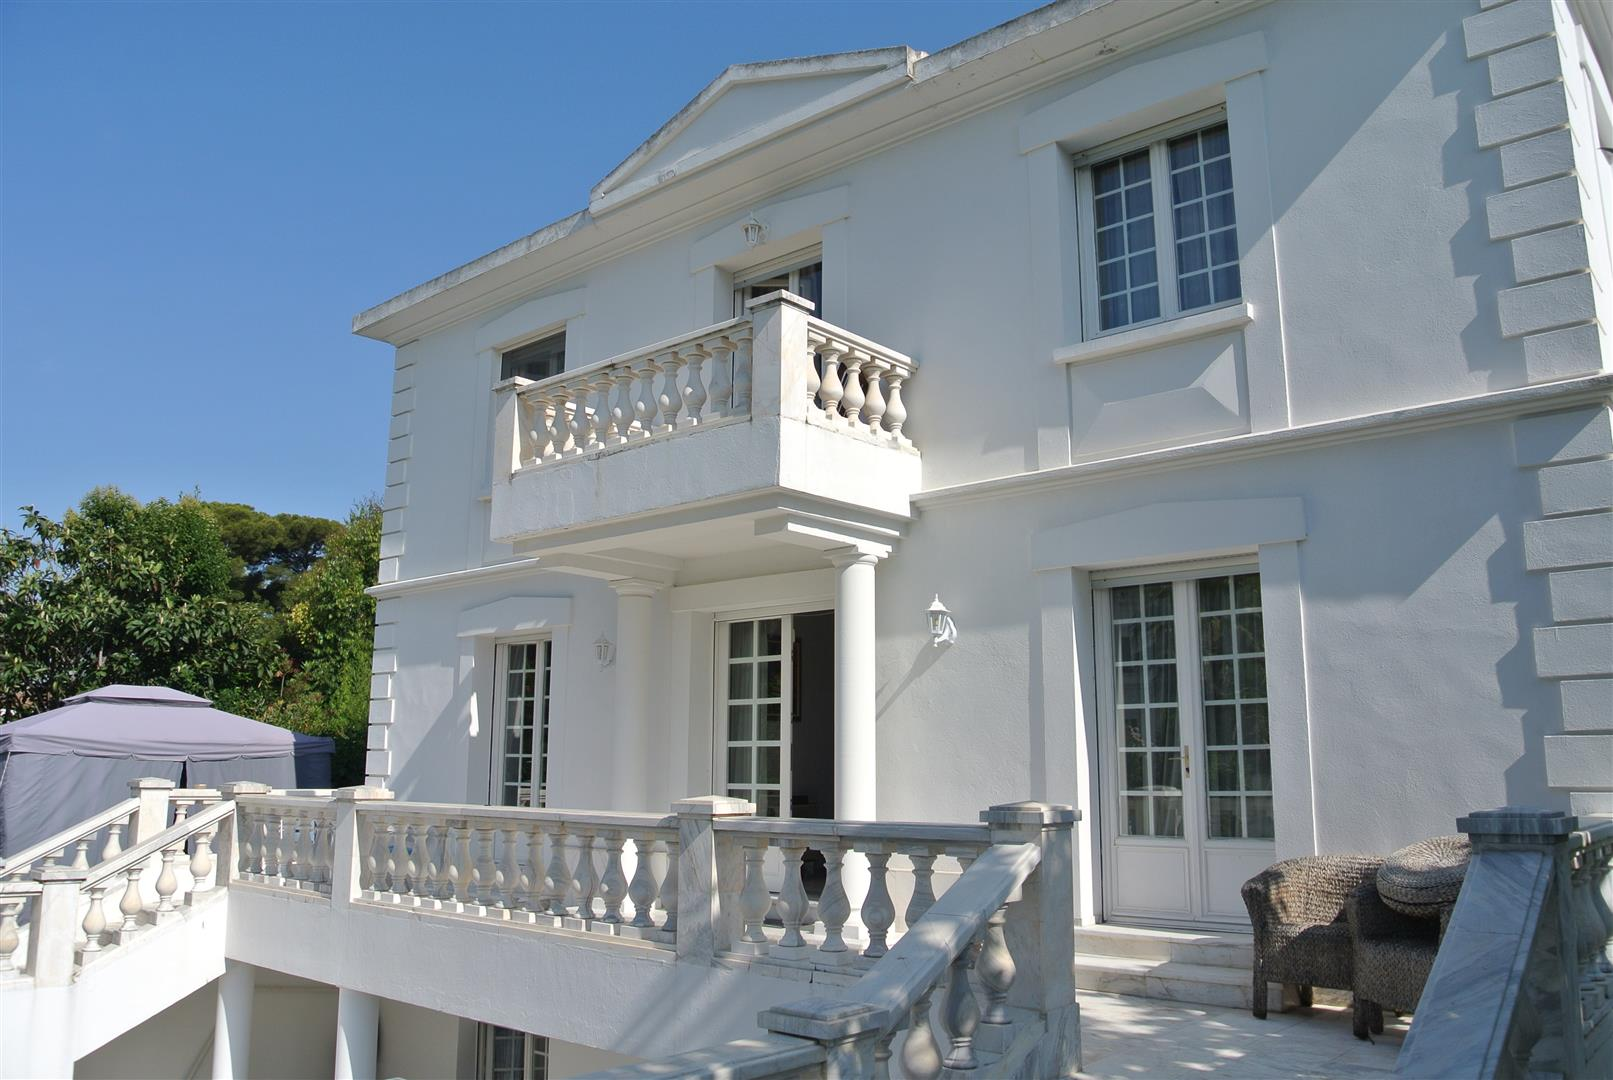 Splendid holiday villa in Cap D'Antibes,Cote d'Azur